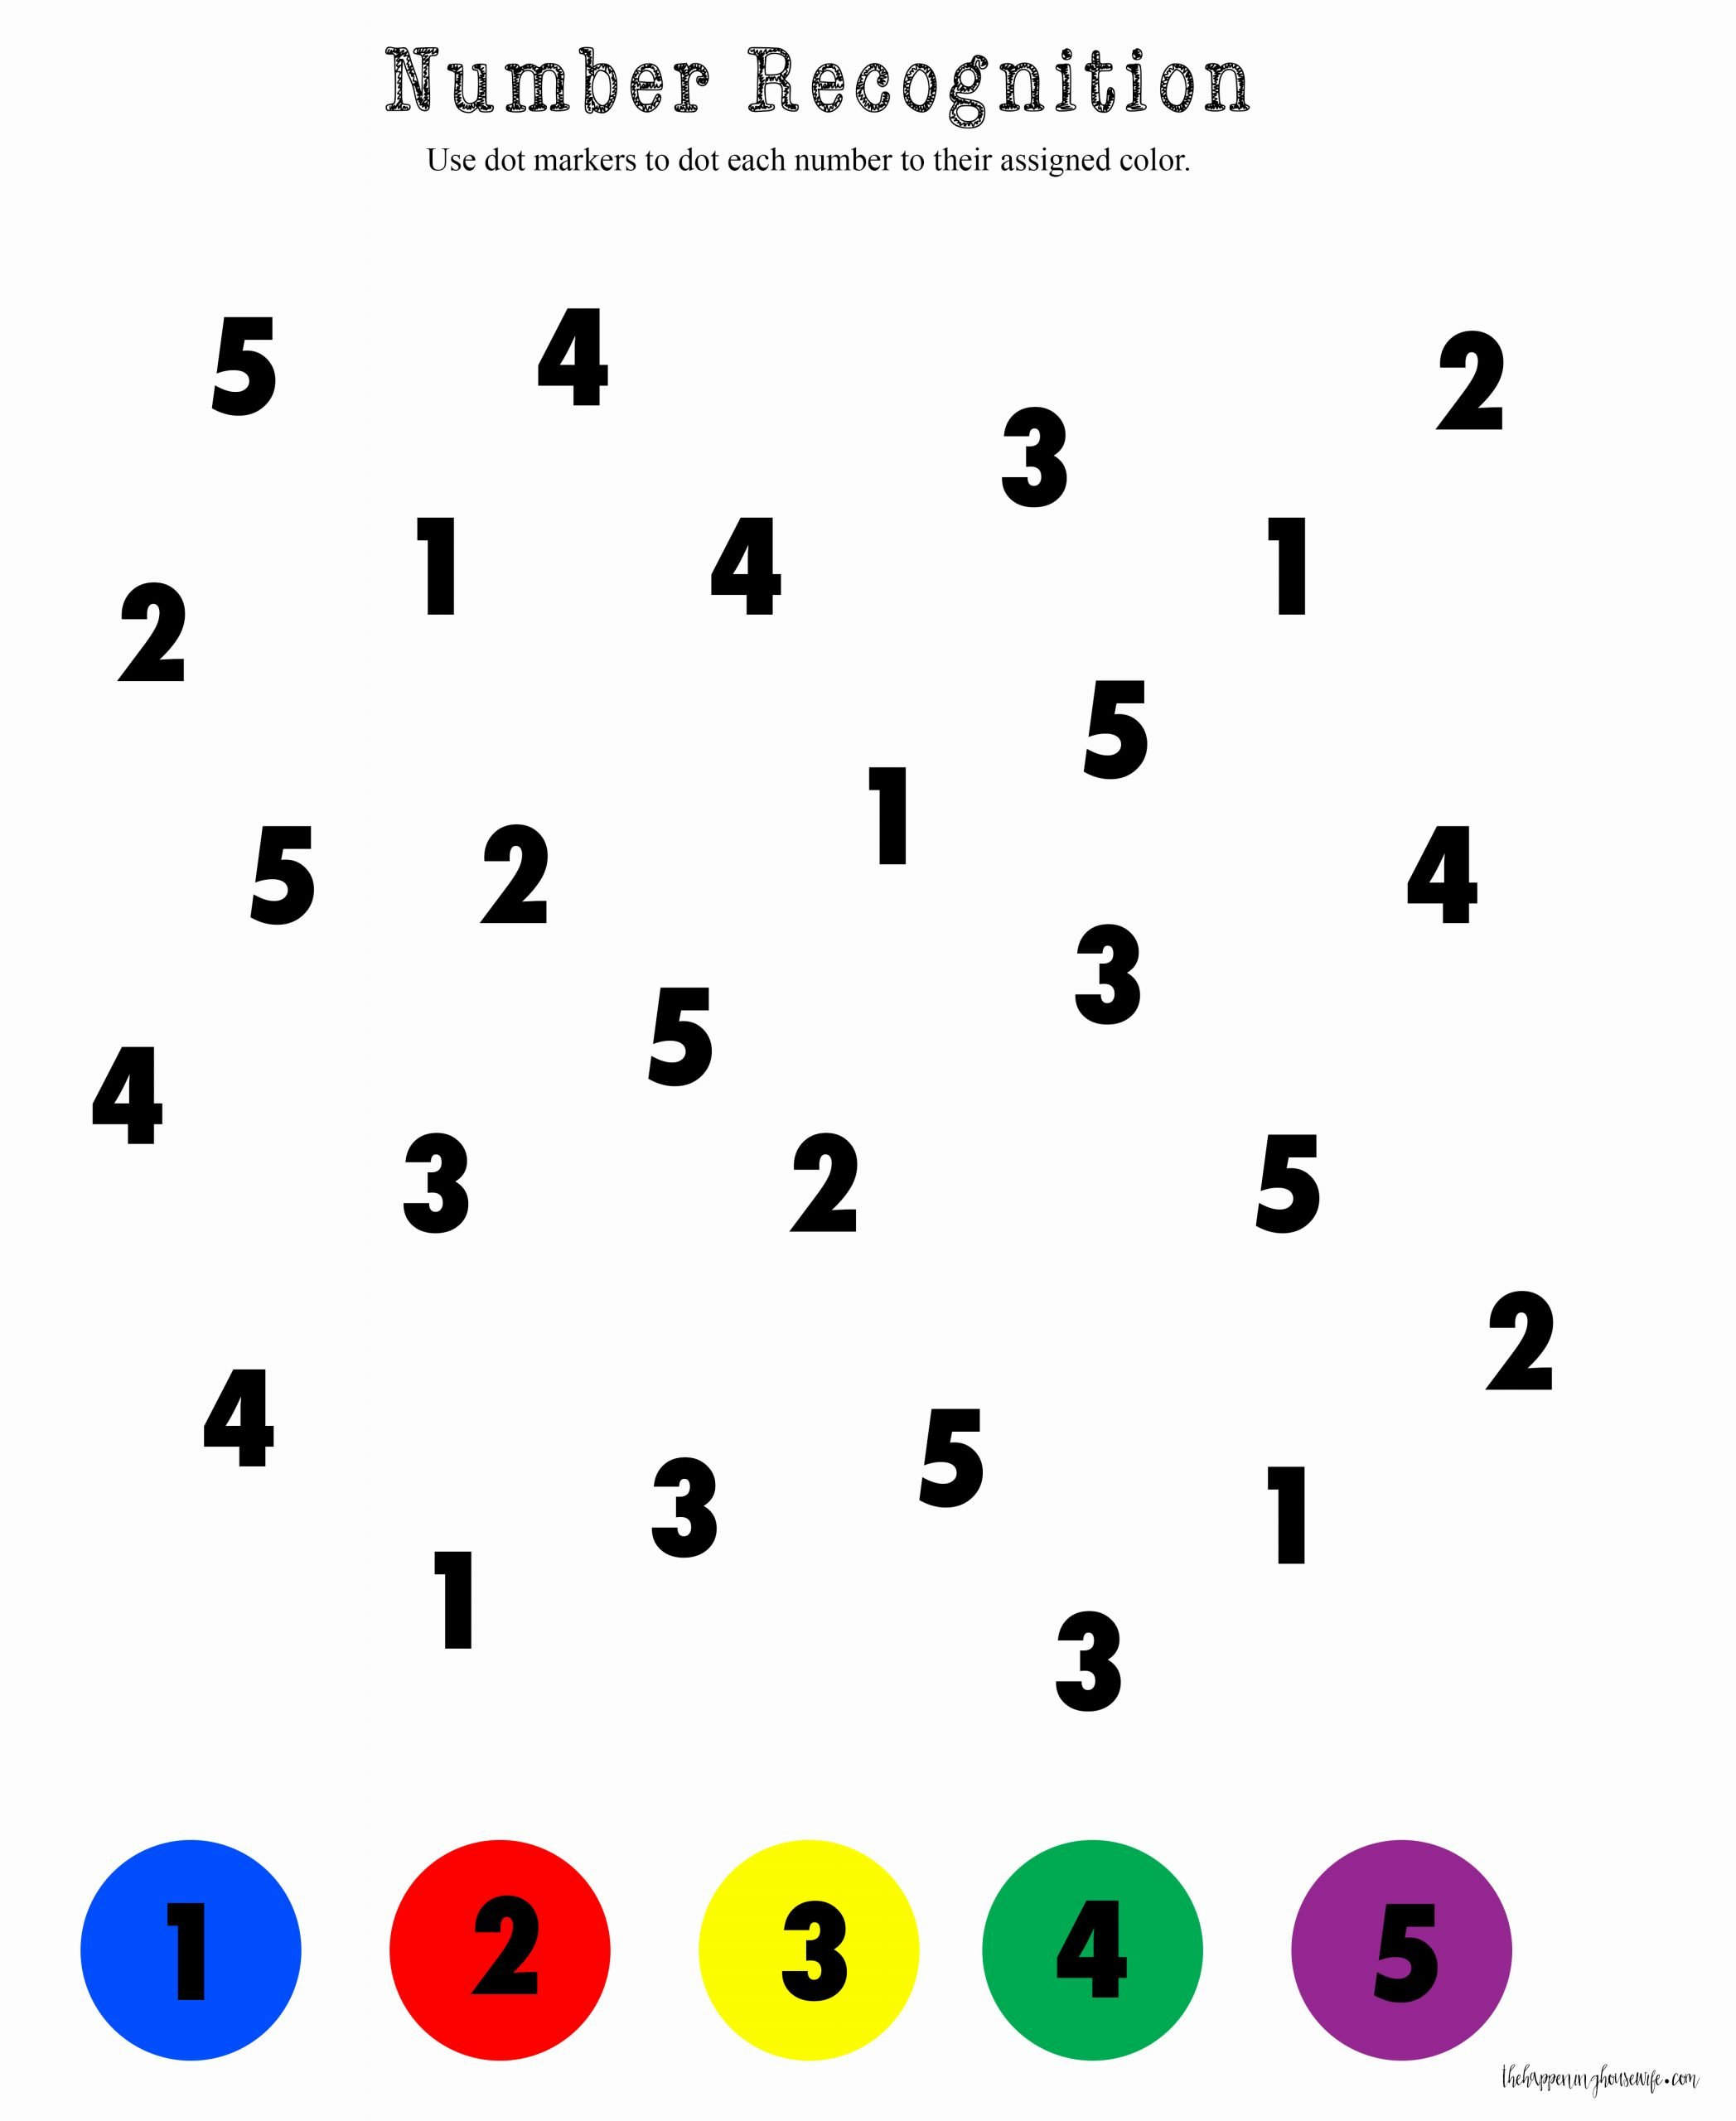 Number Recognition Worksheets for Preschoolers Best Of Number Recognition Worksheets for Download Number